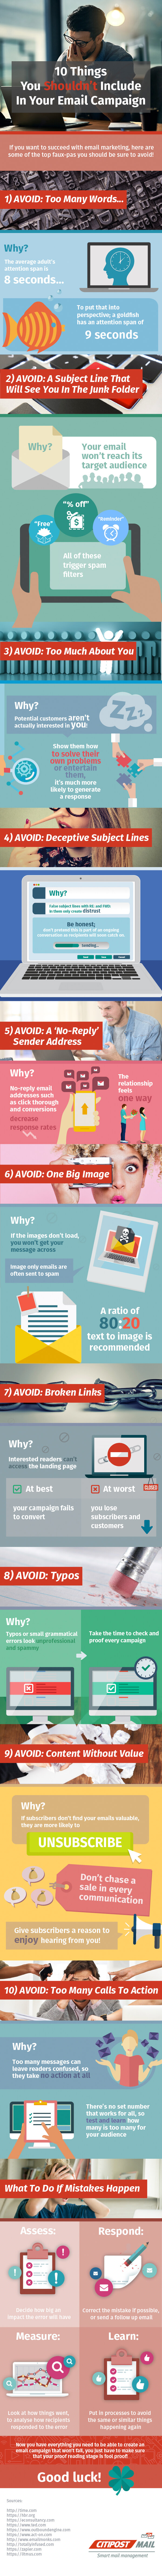 Infographic of 10 Things You Shouldn't Include In Your Email Campaign